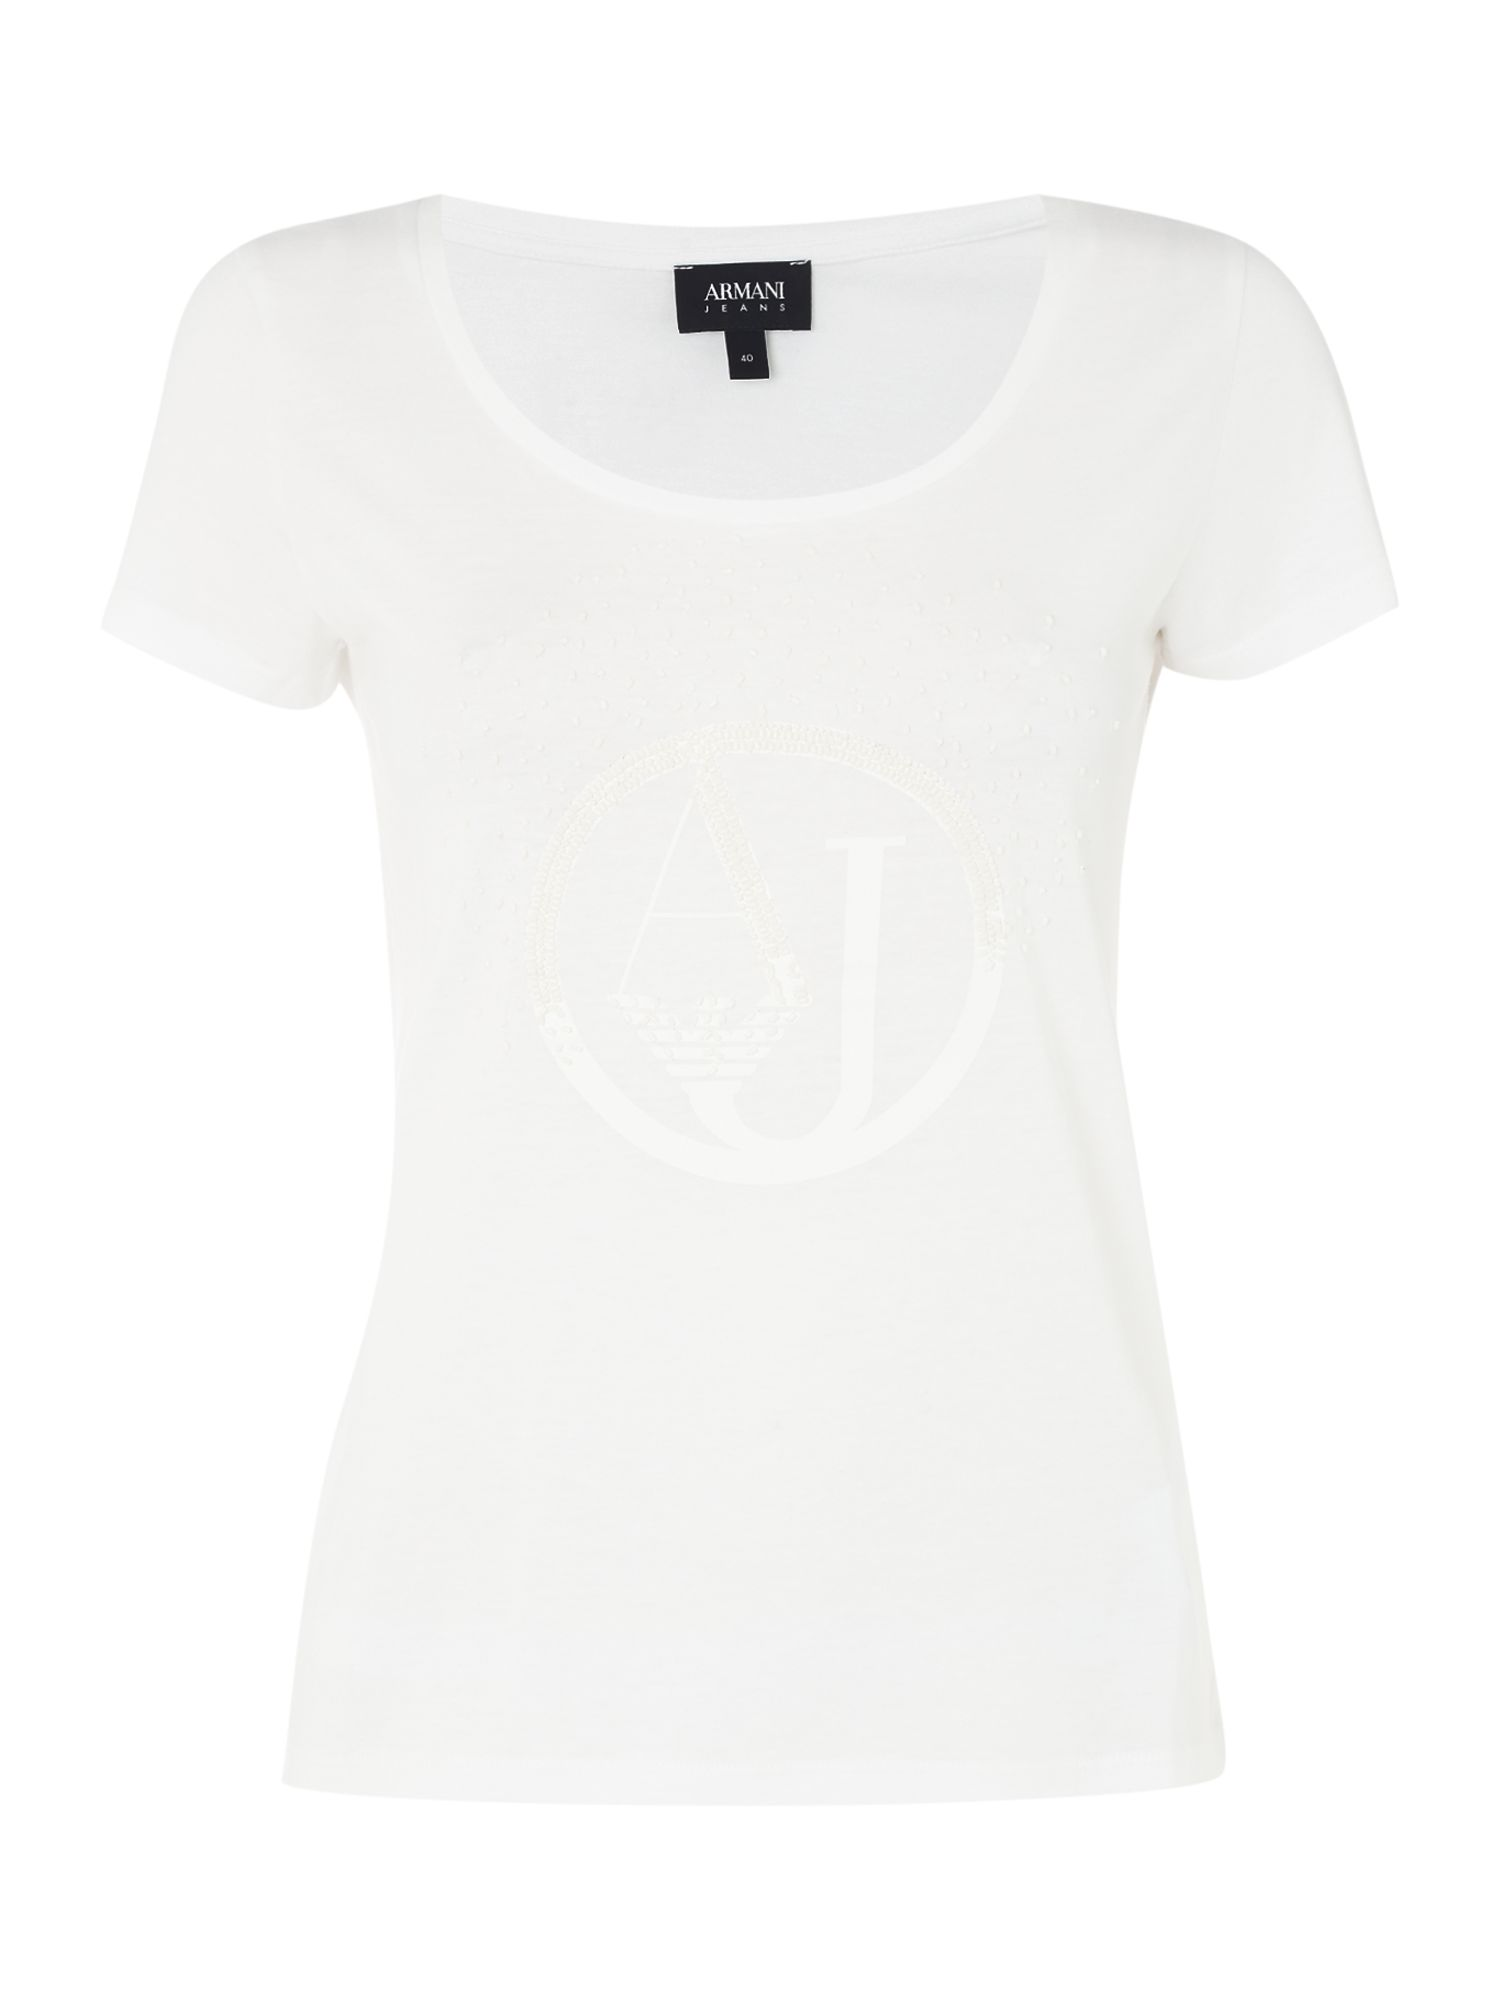 Armani Jeans Short sleeve shiny AJ tee in white, White